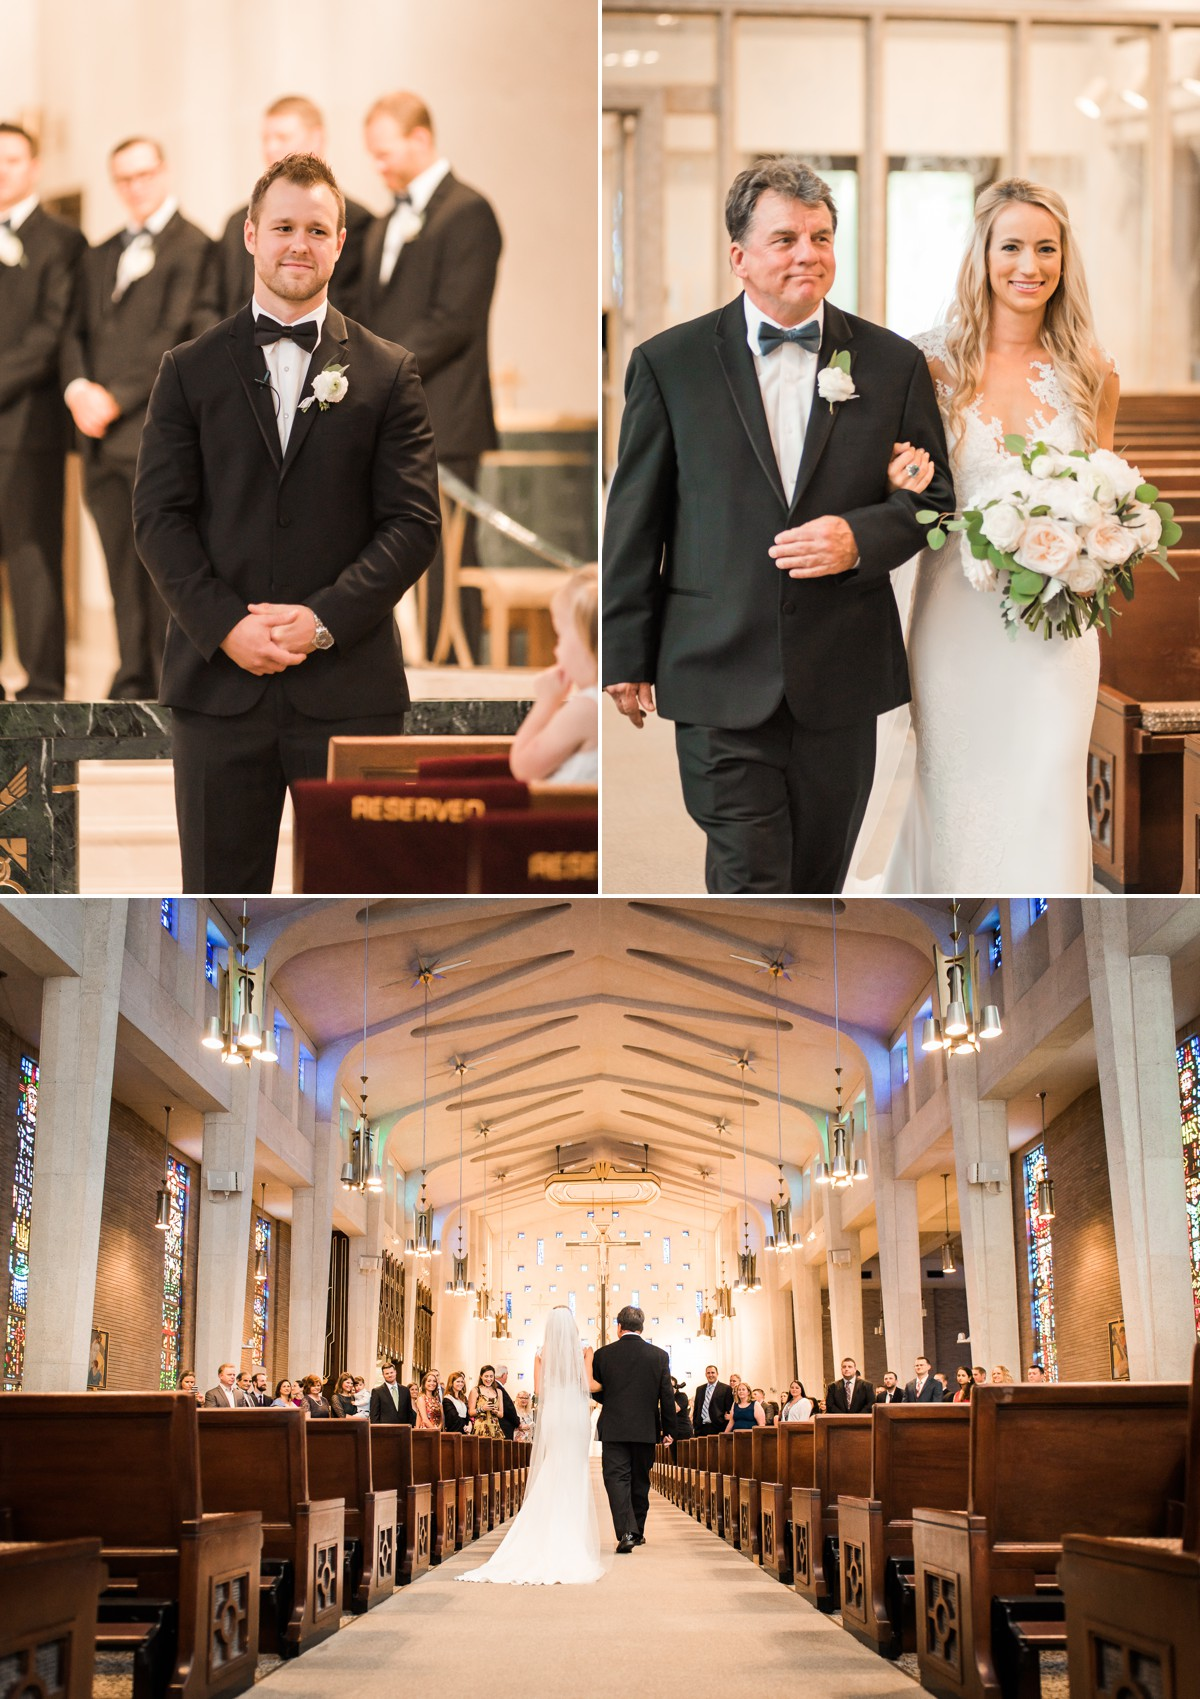 Wedding Photos of Laura & Jared by Nate Messarra